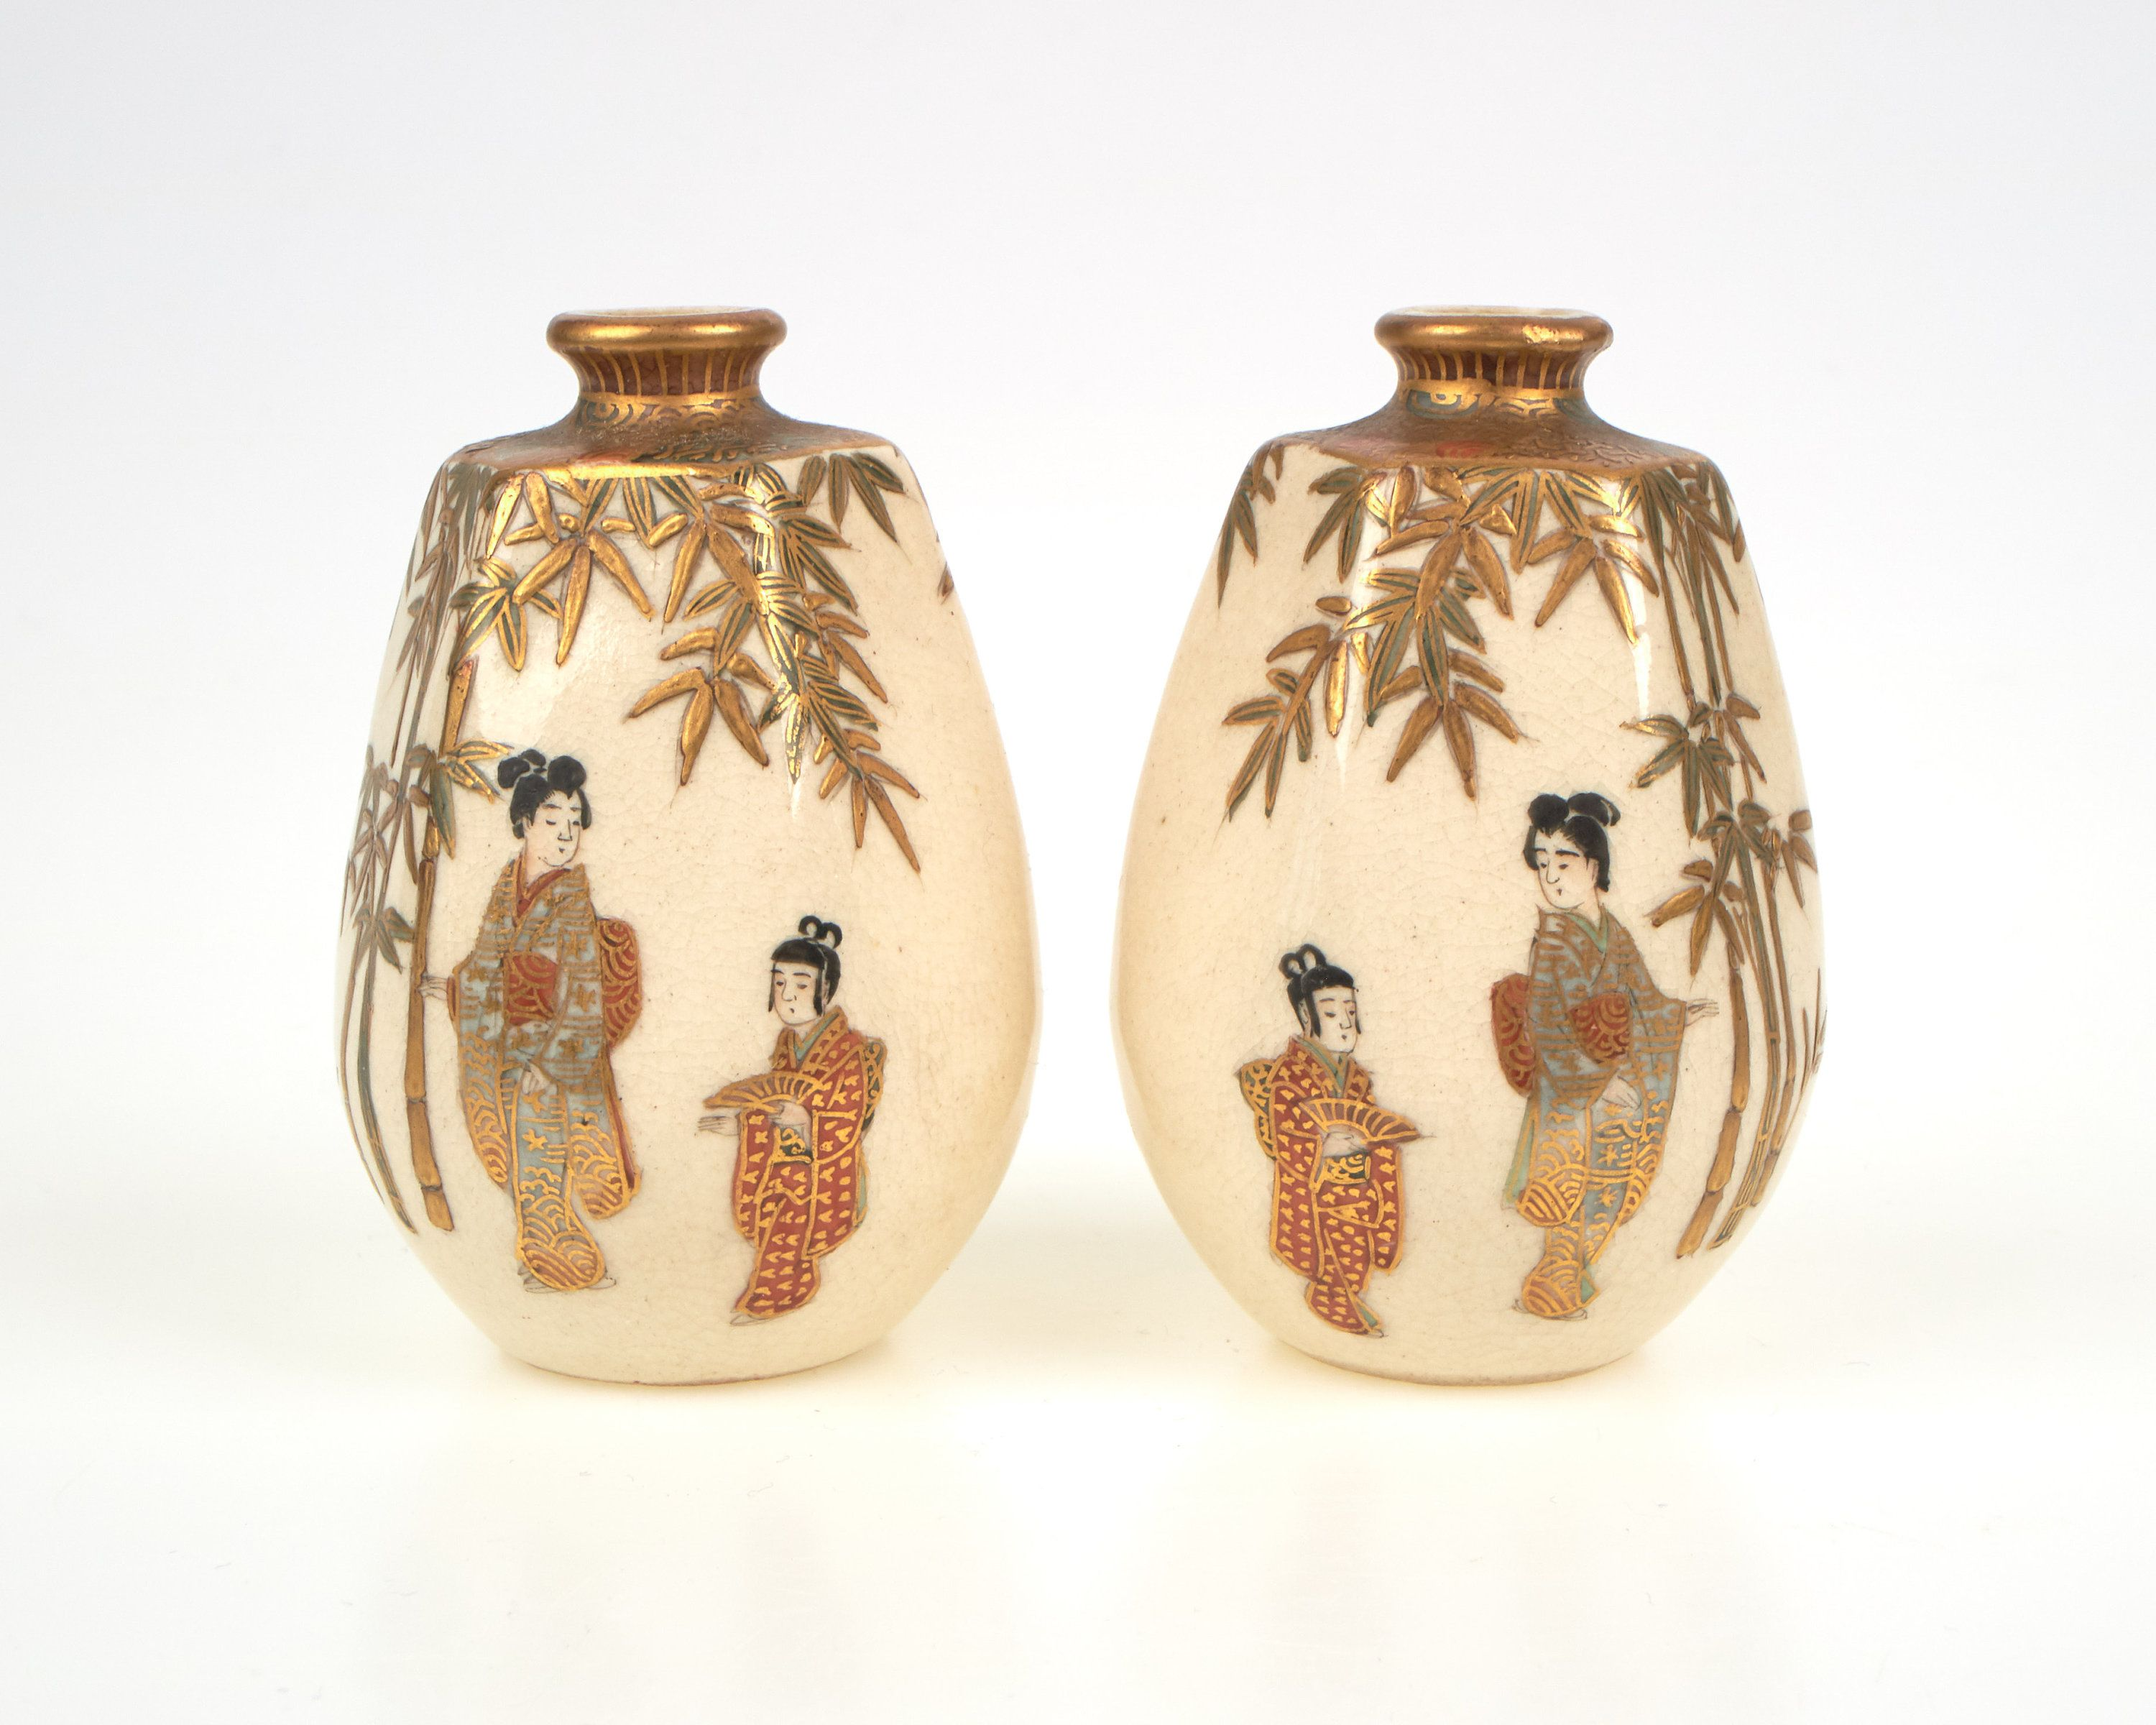 Pair of antique 1900s Japanese satsuma pottery vases